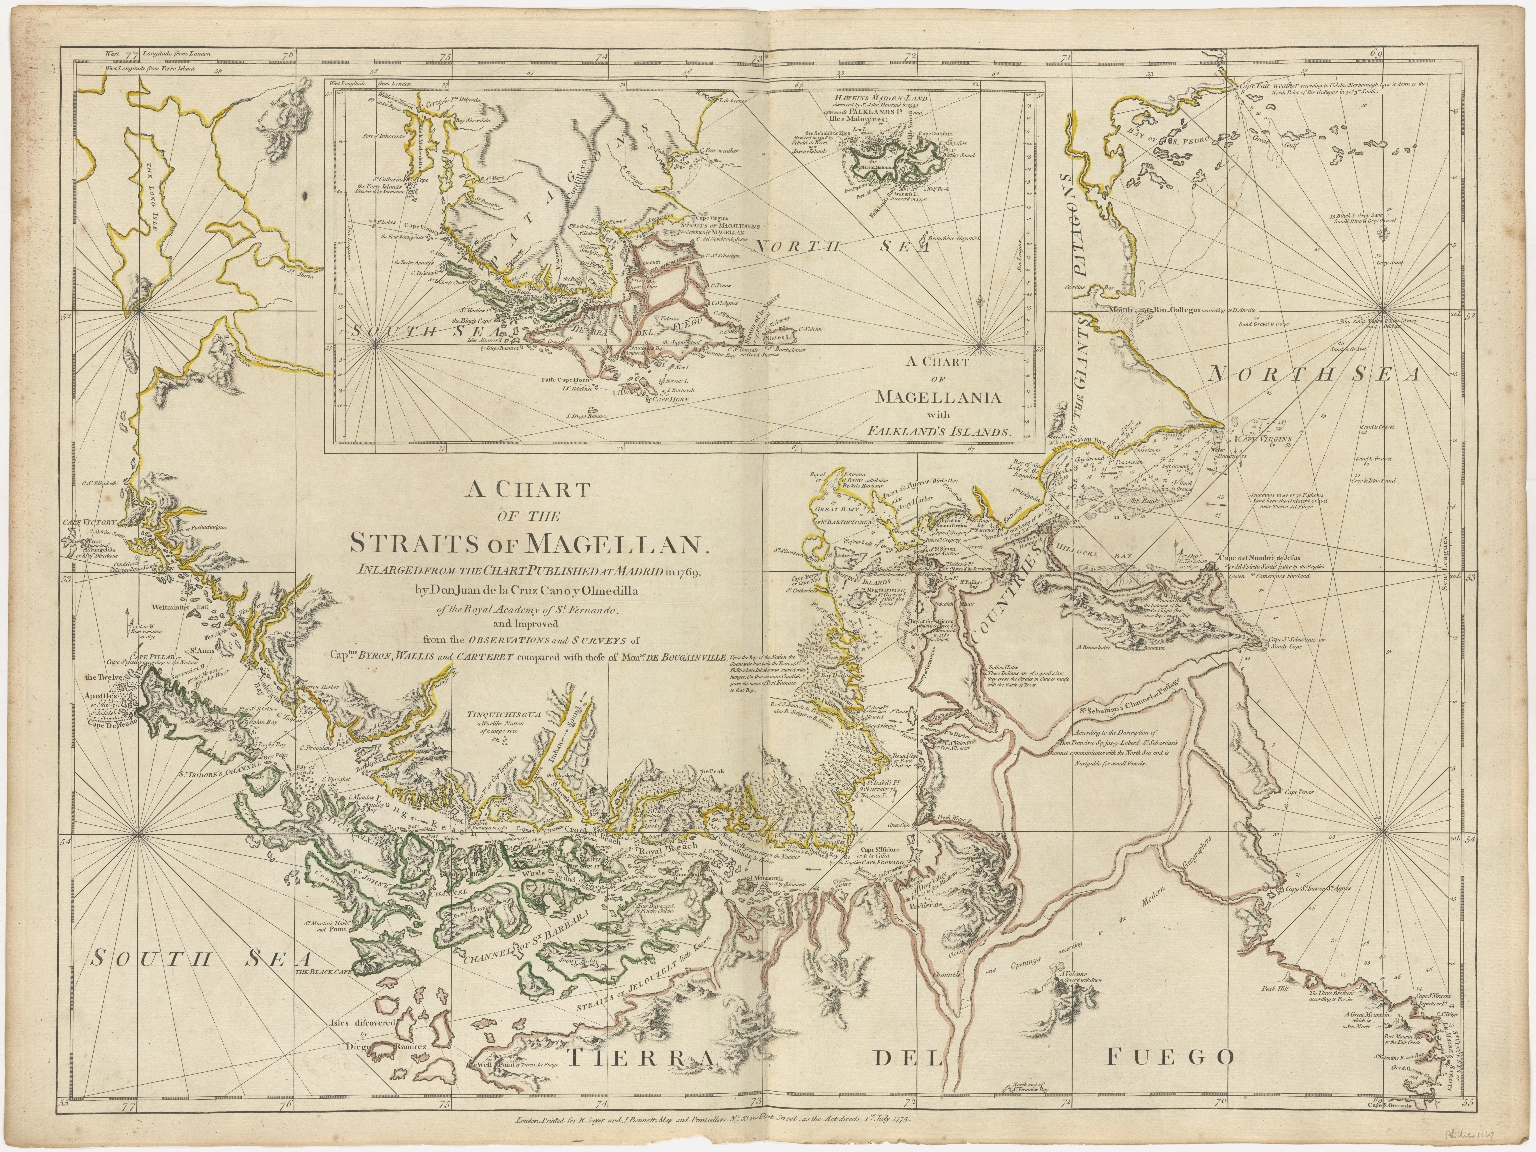 A Chart of the Straits of Magellan. Inlarged from the Chart Published at Madrid in 1769, by Don Juan de la Cruz Cano y Olmedillia of the Royal Academy of St. Fernando. and Improved from the Observations and Surveys of Captns. Byron, Wallis and Carteret compared with those of Monsr. de Bougainville